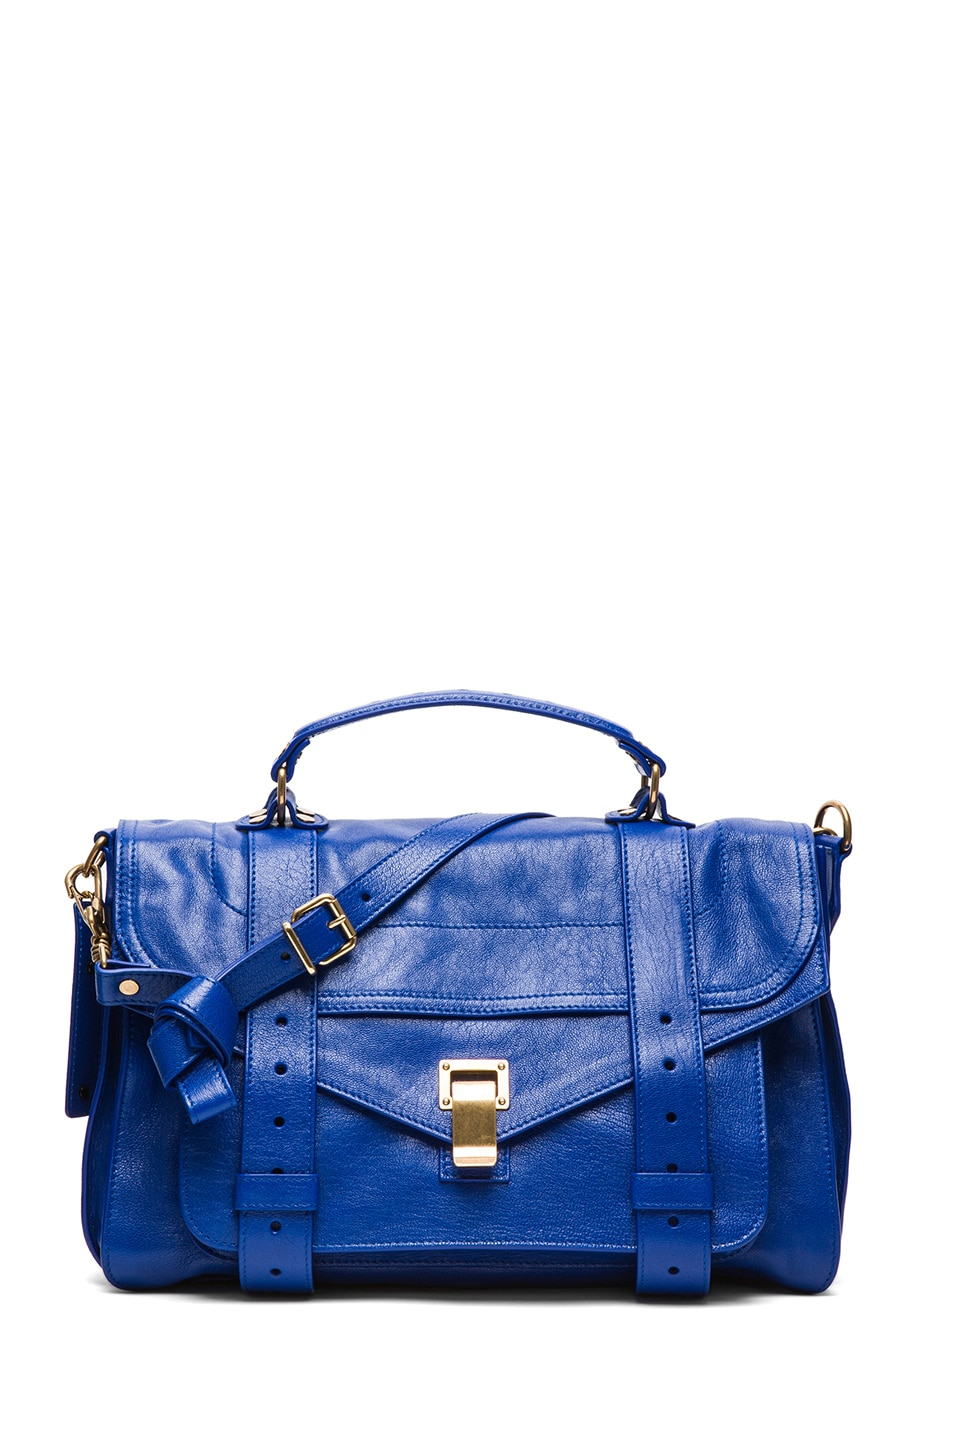 Image 1 of Proenza Schouler Medium PS1 Leather Satchel in Royal Blue